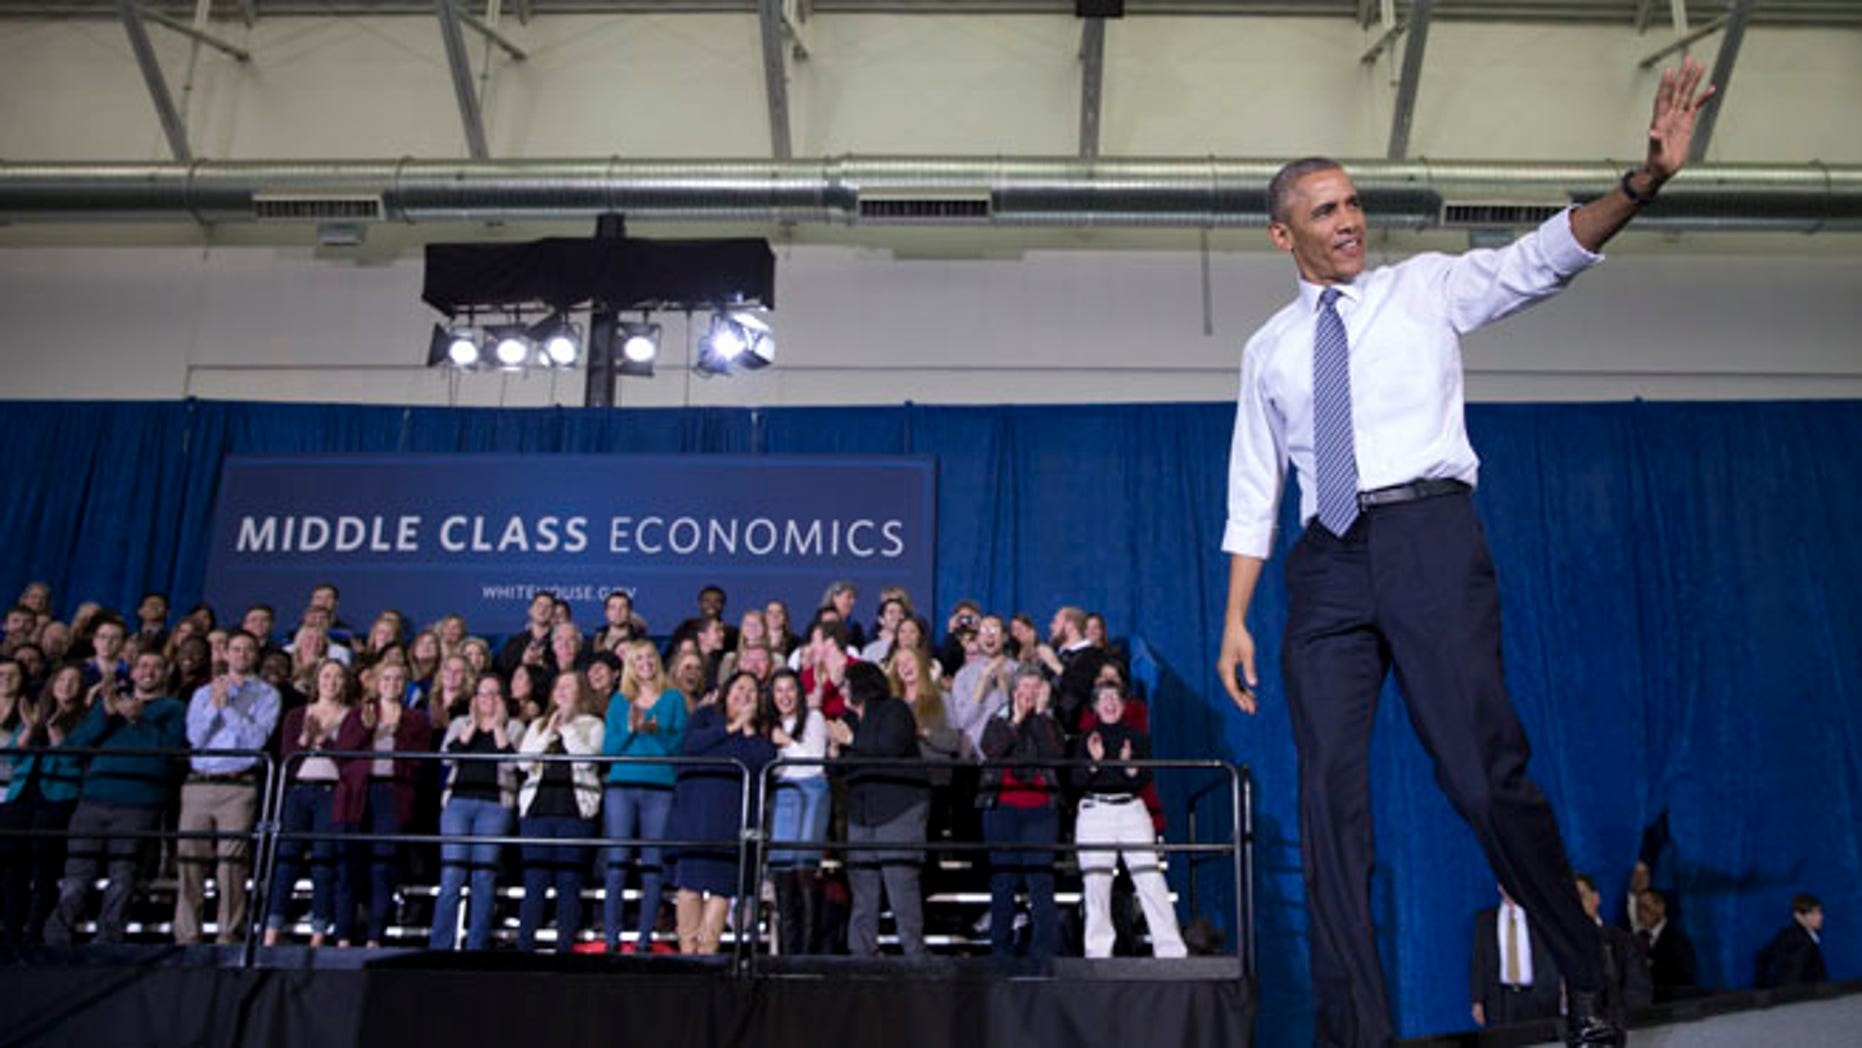 Jan. 21, 2015: President Obama arrives to speak at Boise State University, in Boise, Idaho.